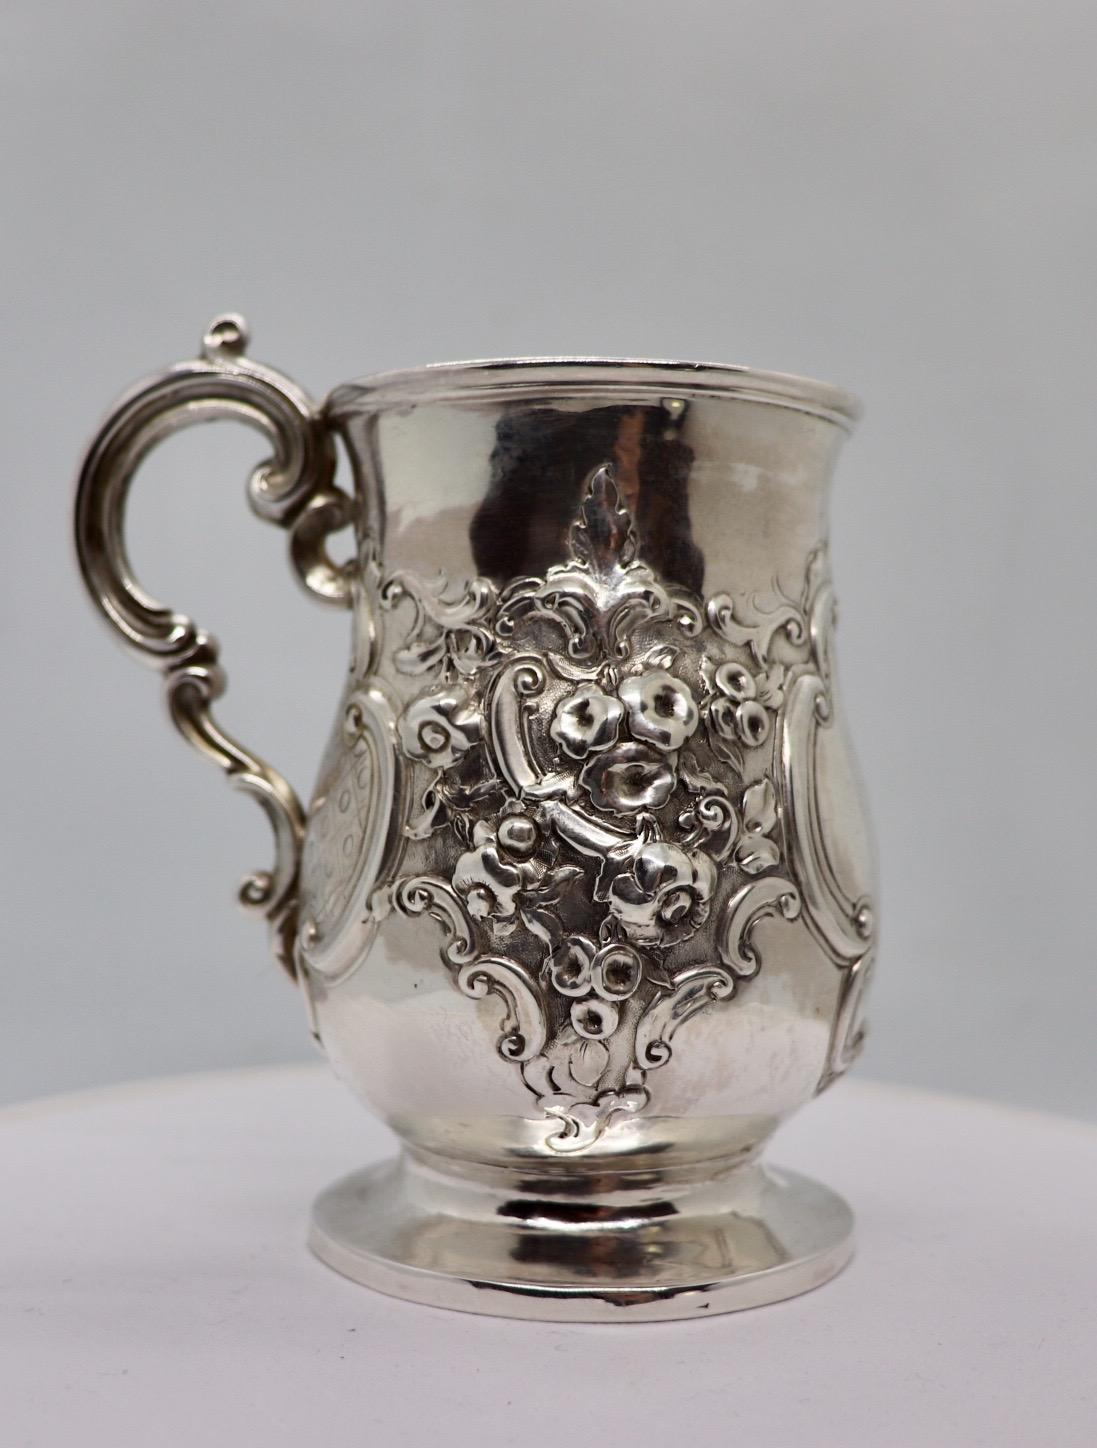 Silver Antiques Plus image (2 of 6)